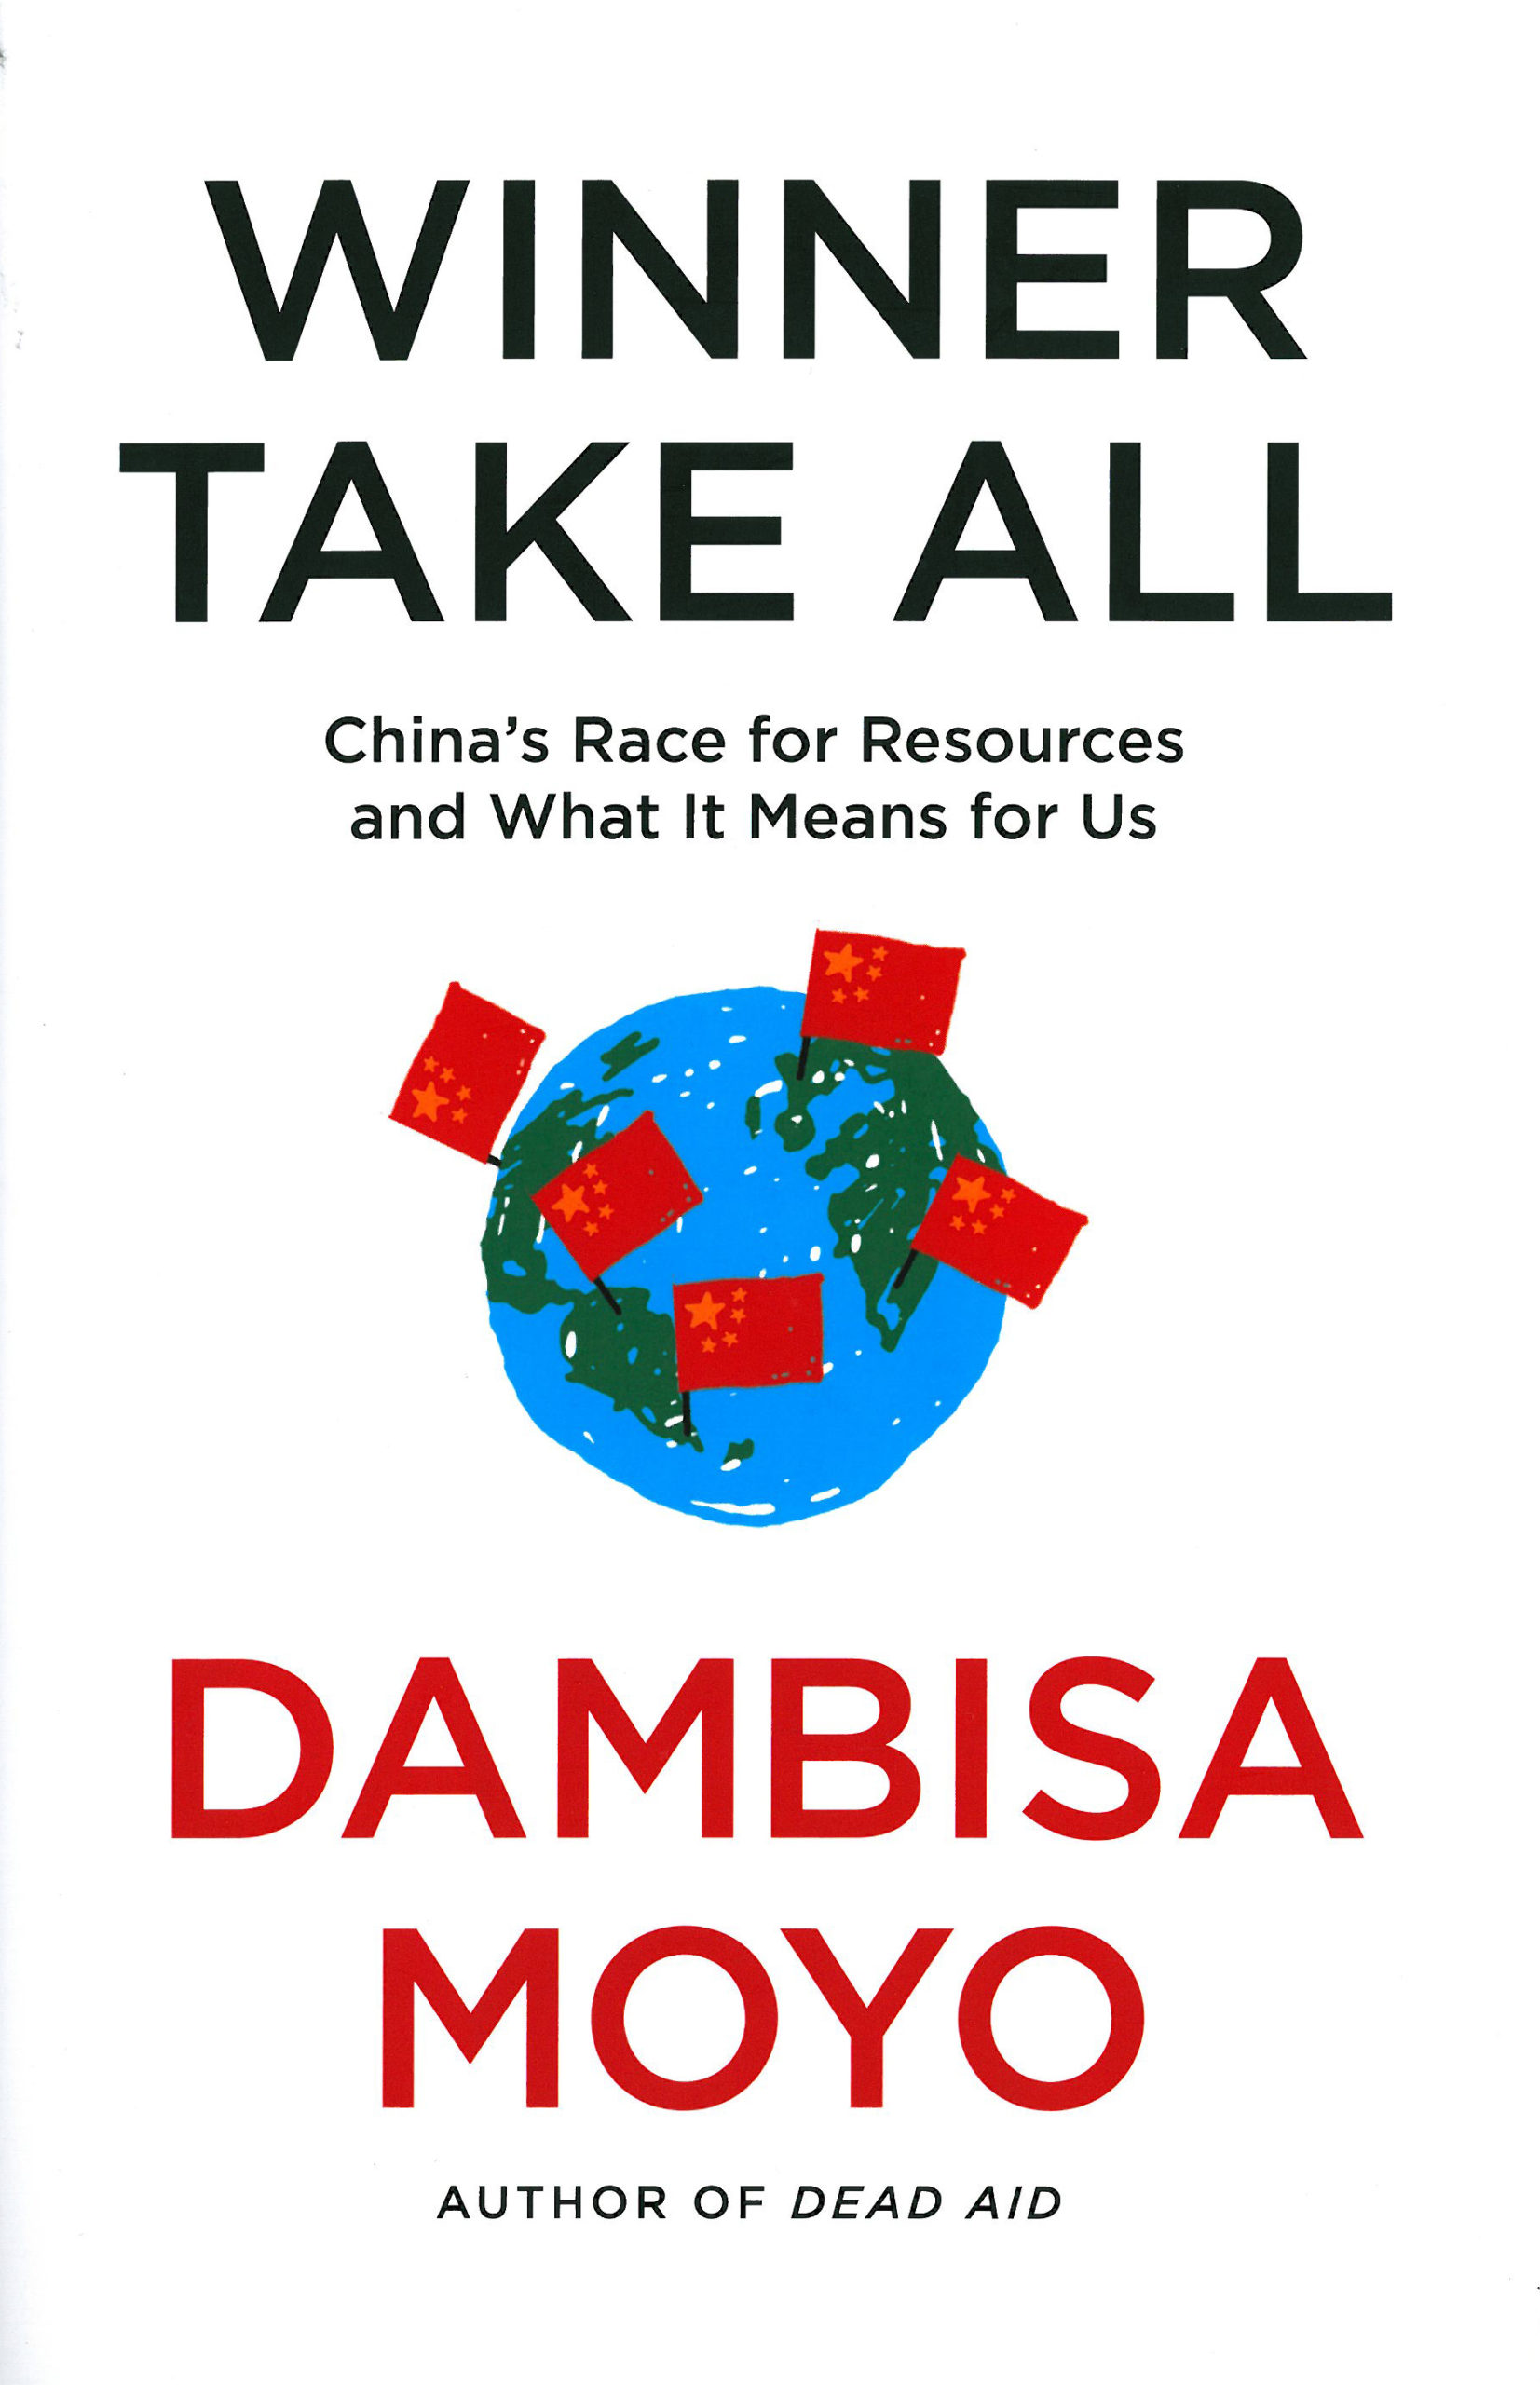 Dambisa Moyo: Winner Take All. China's Race for Resources and What It Means for Us. Allen Lane 2012, 257 s.